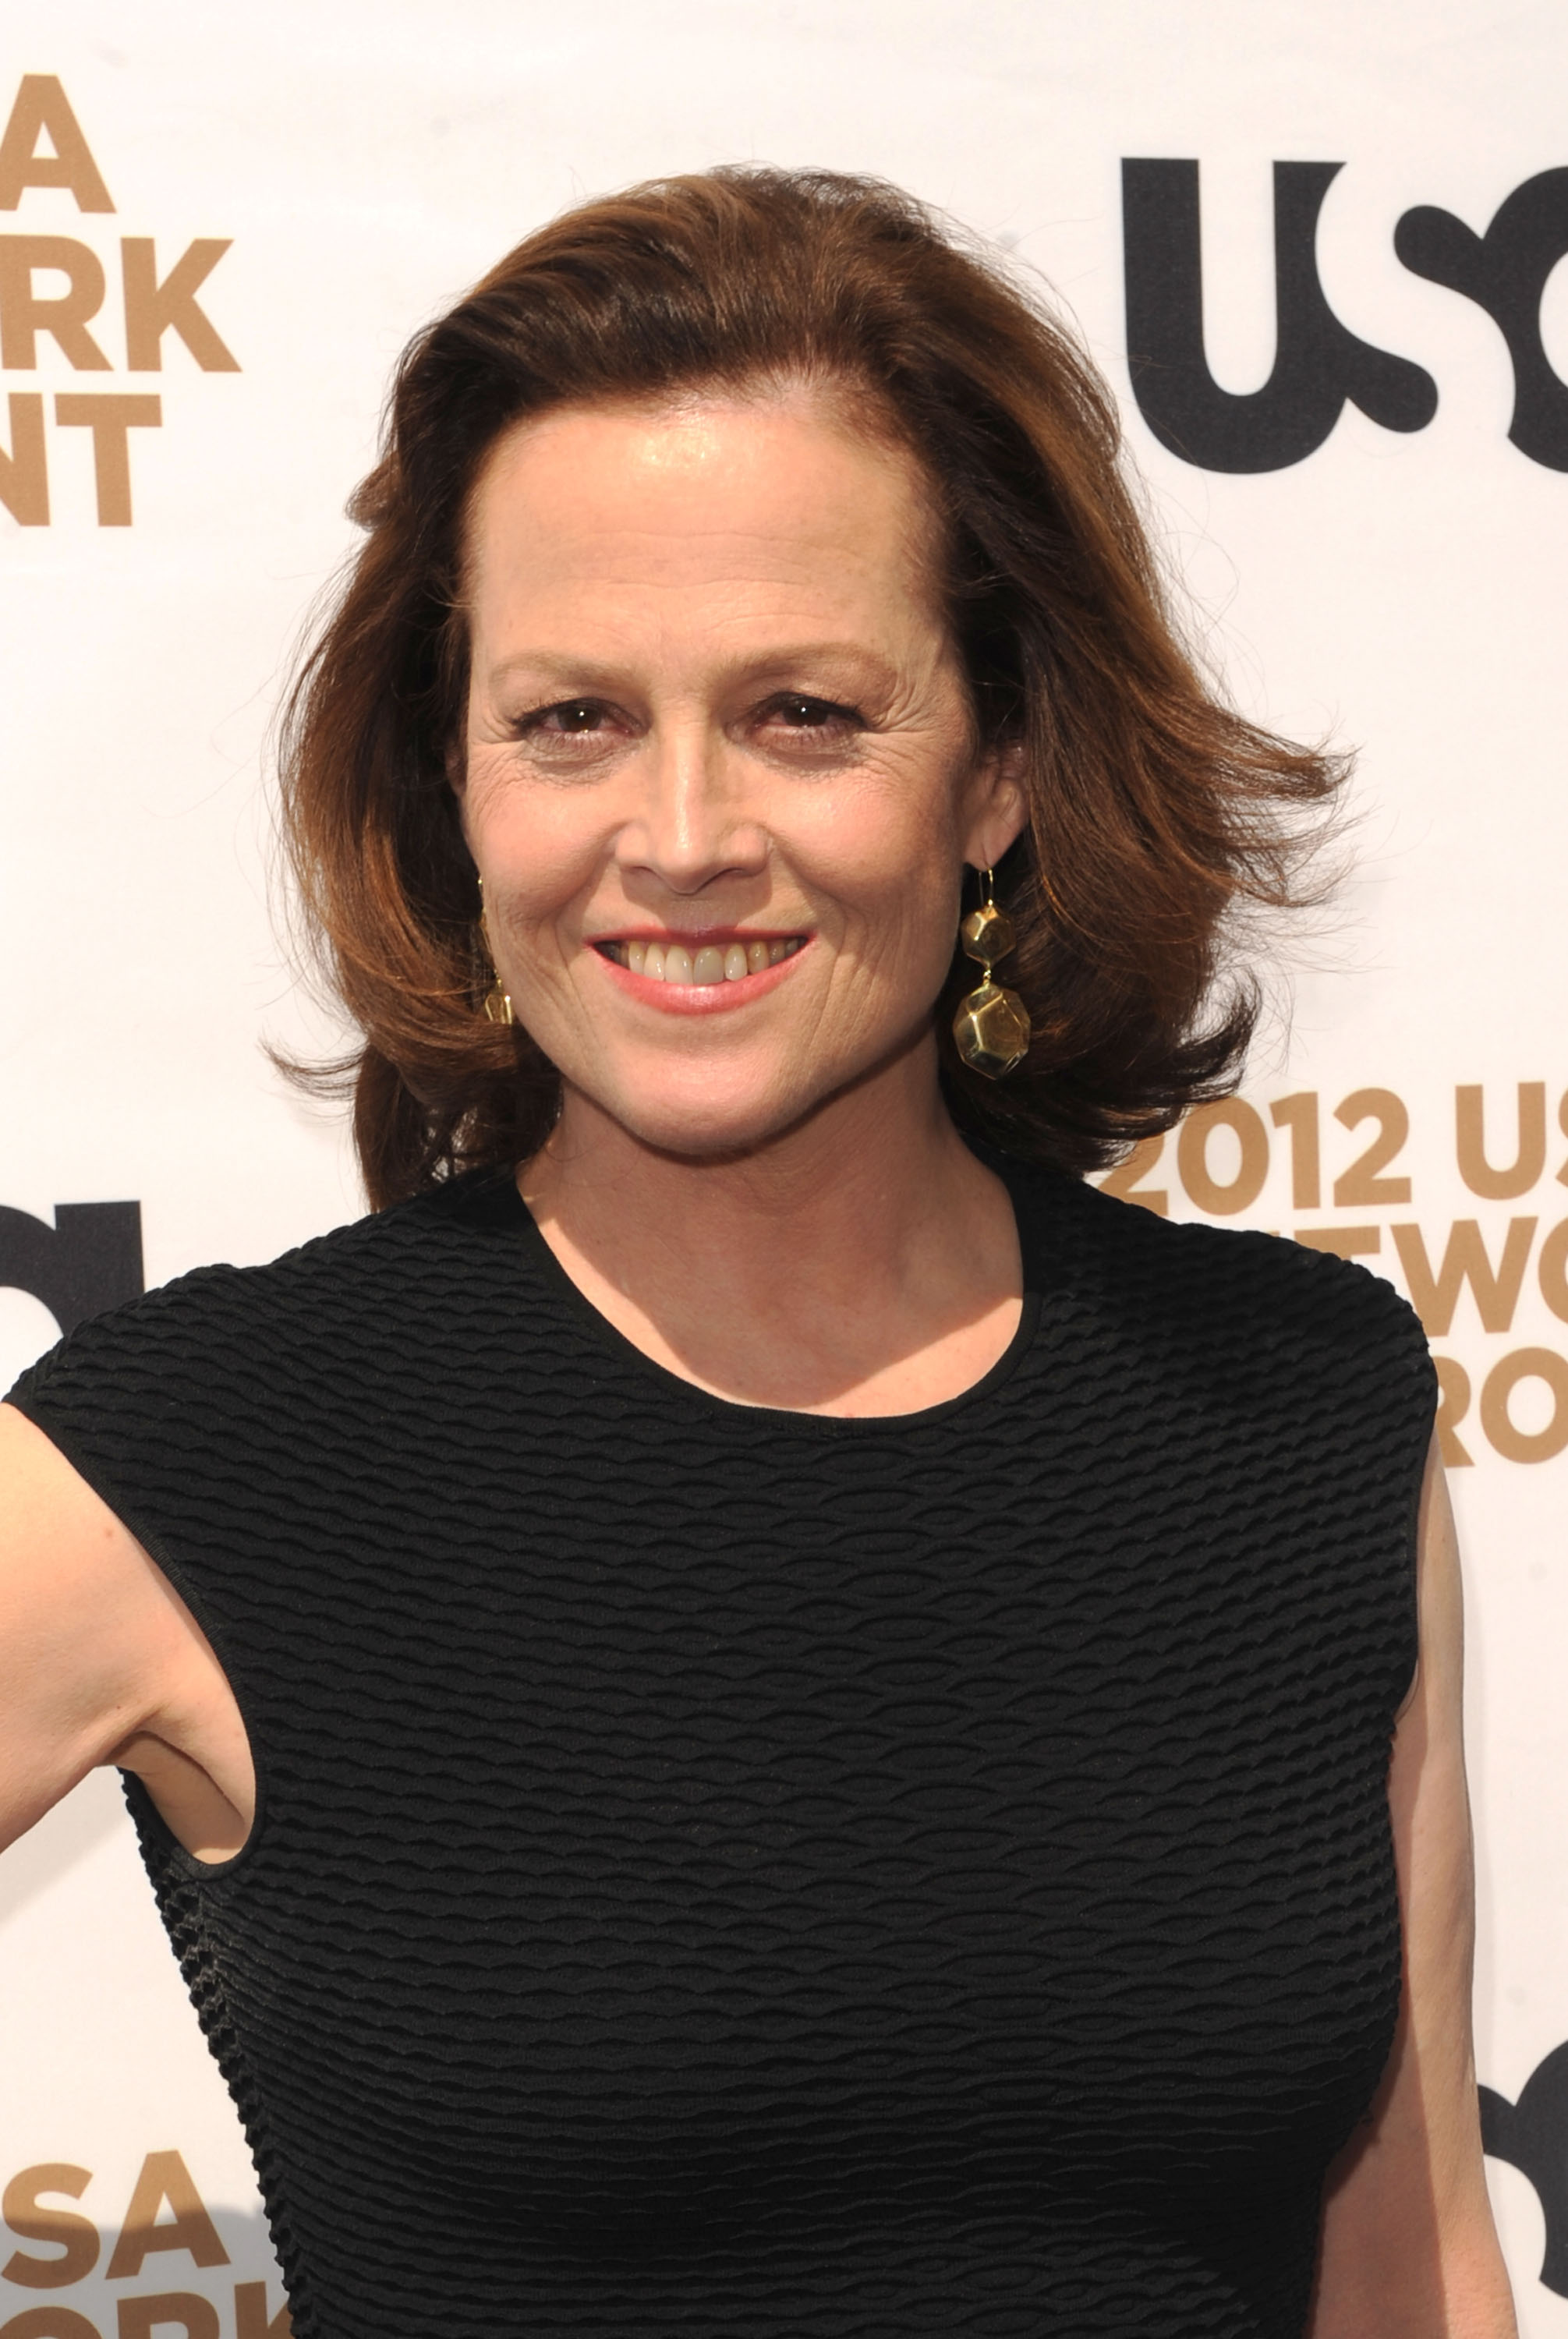 Sigourney Weaver Filmography And Biography On Movies Film: Sage And Over 60: Hollywood's Leading